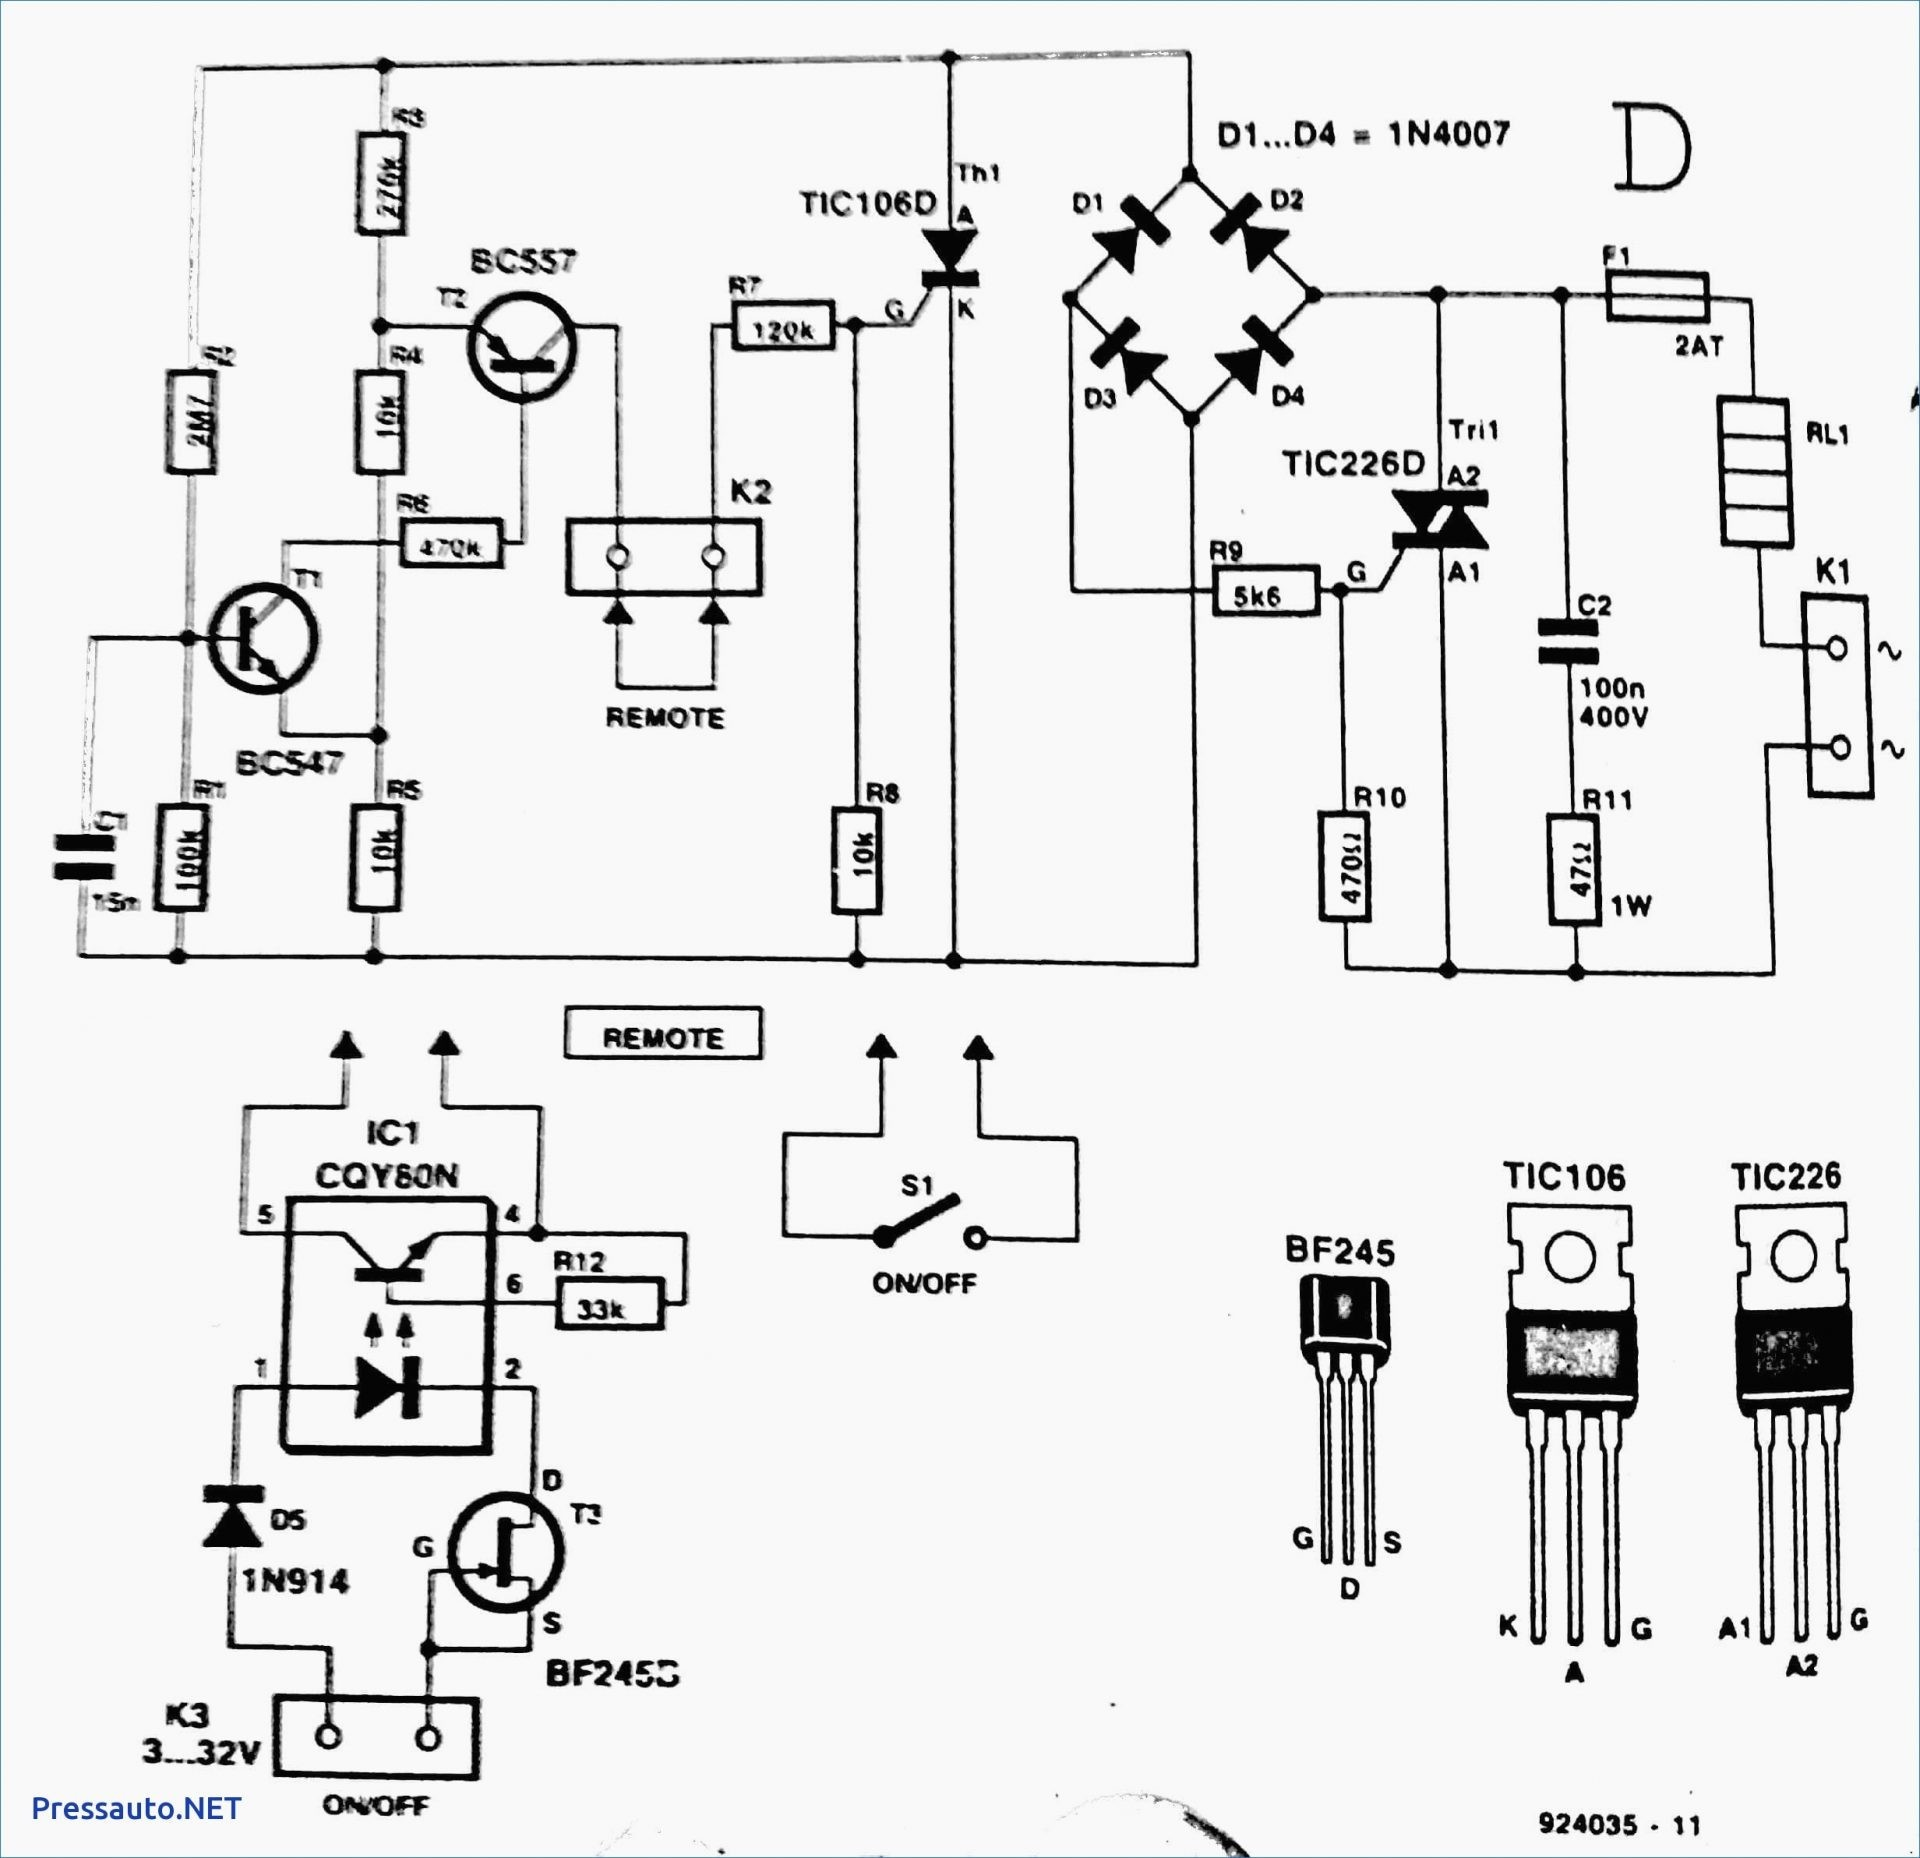 Leviton Dimmer Switch Wiring Diagram Leviton Single Pole Switch with Pilot Light Wiring Diagram Fresh Of Leviton Dimmer Switch Wiring Diagram